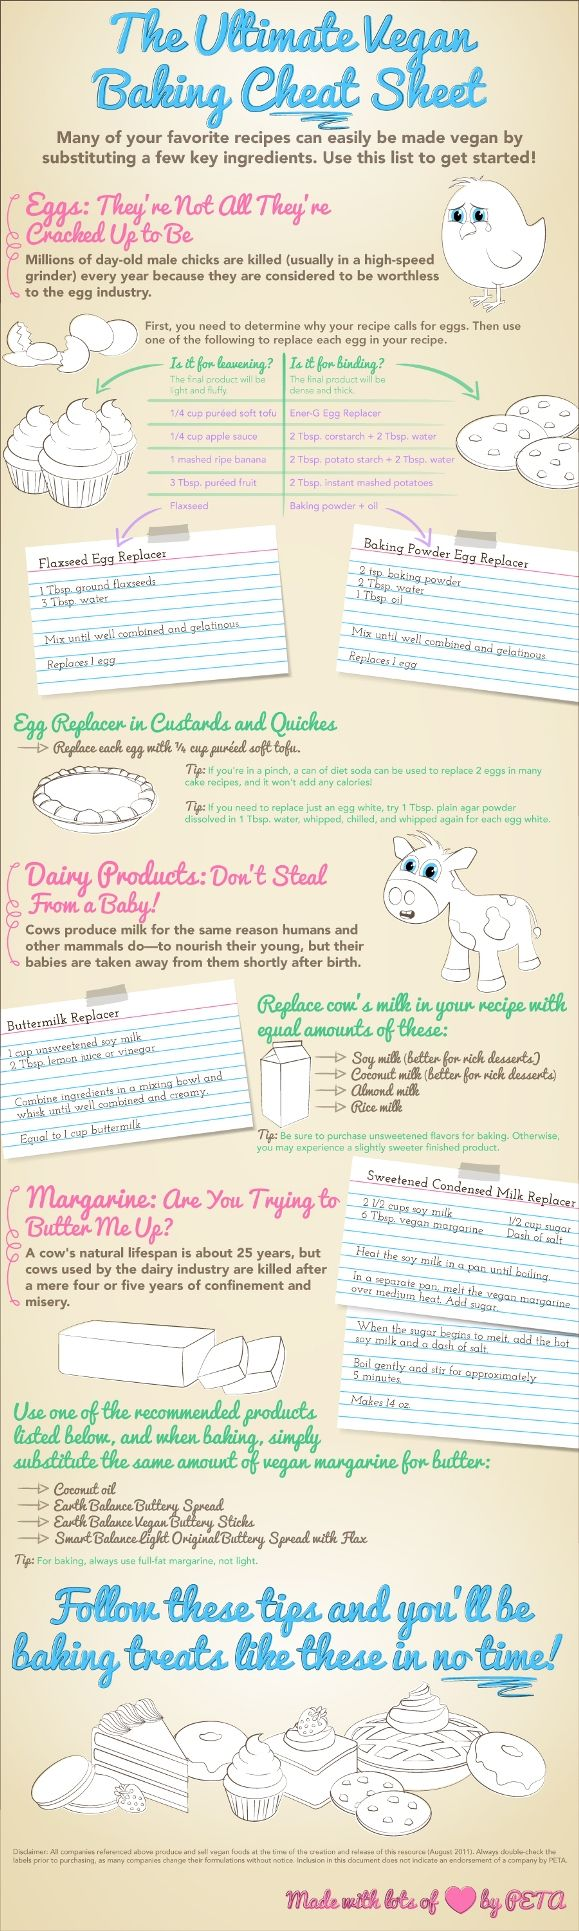 Vegan baking cheat sheet!!! Substitutes to make recipes vegan!